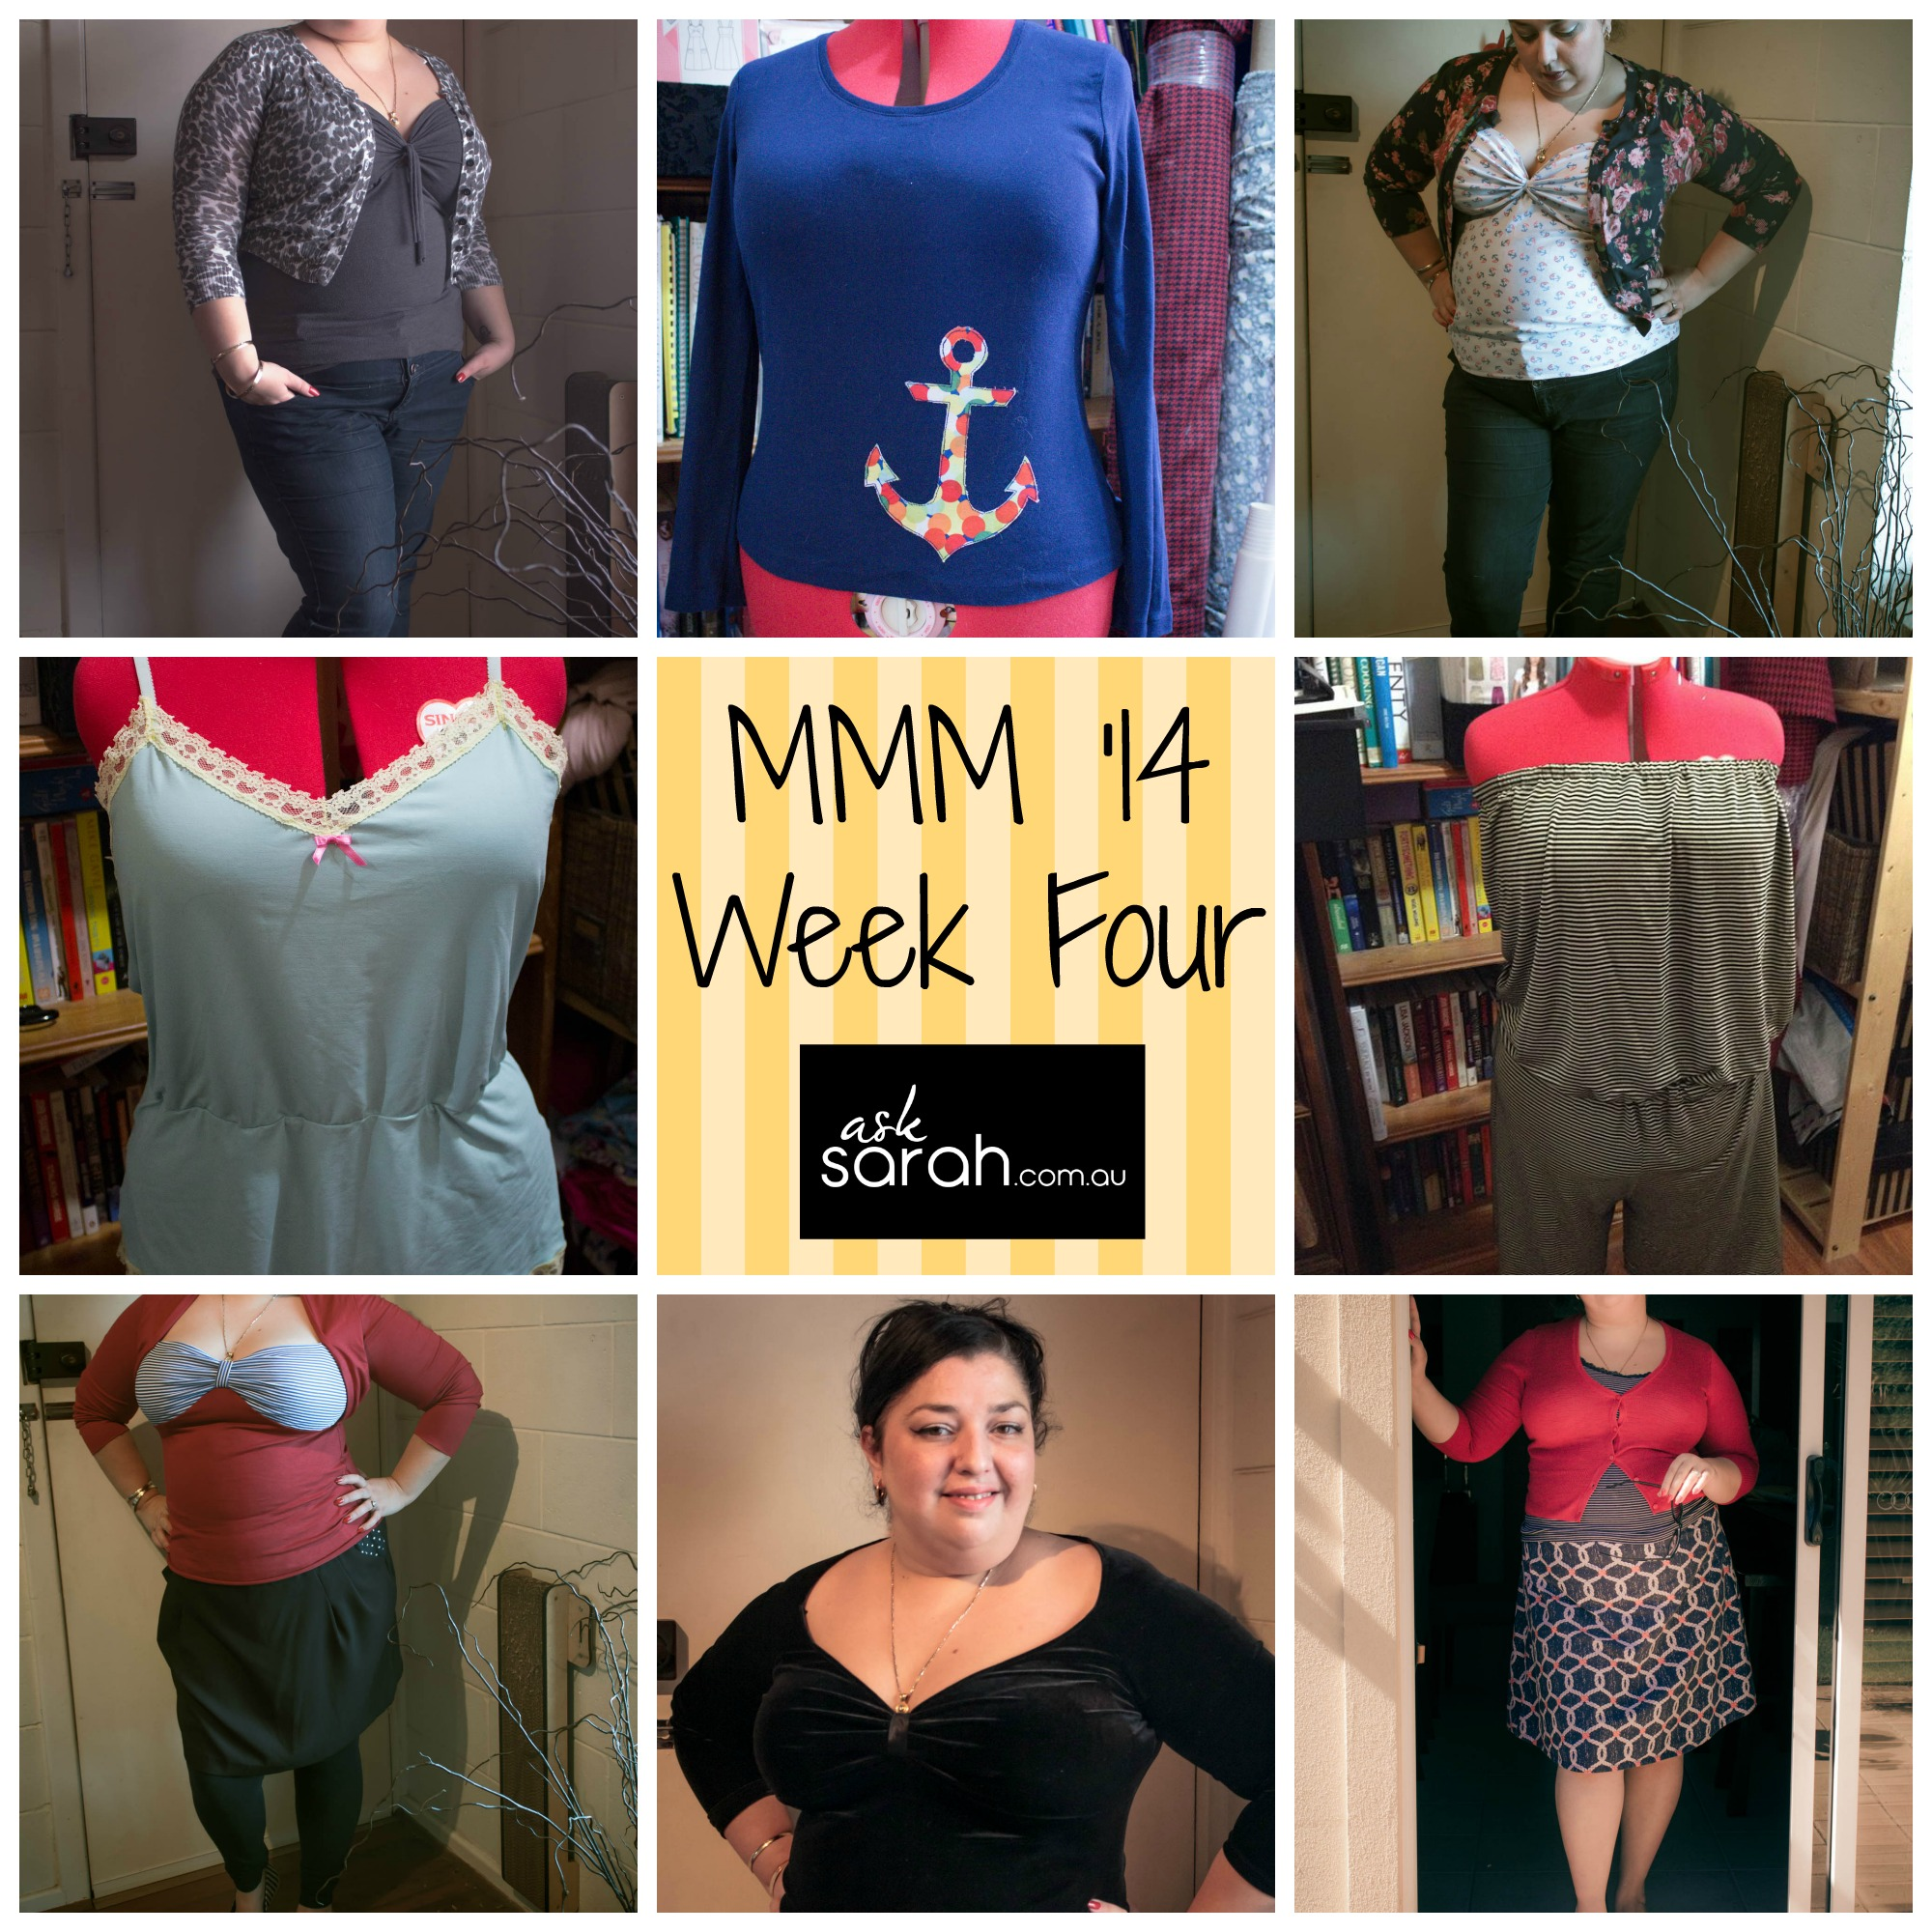 MMMM '14 Outfits Week Four